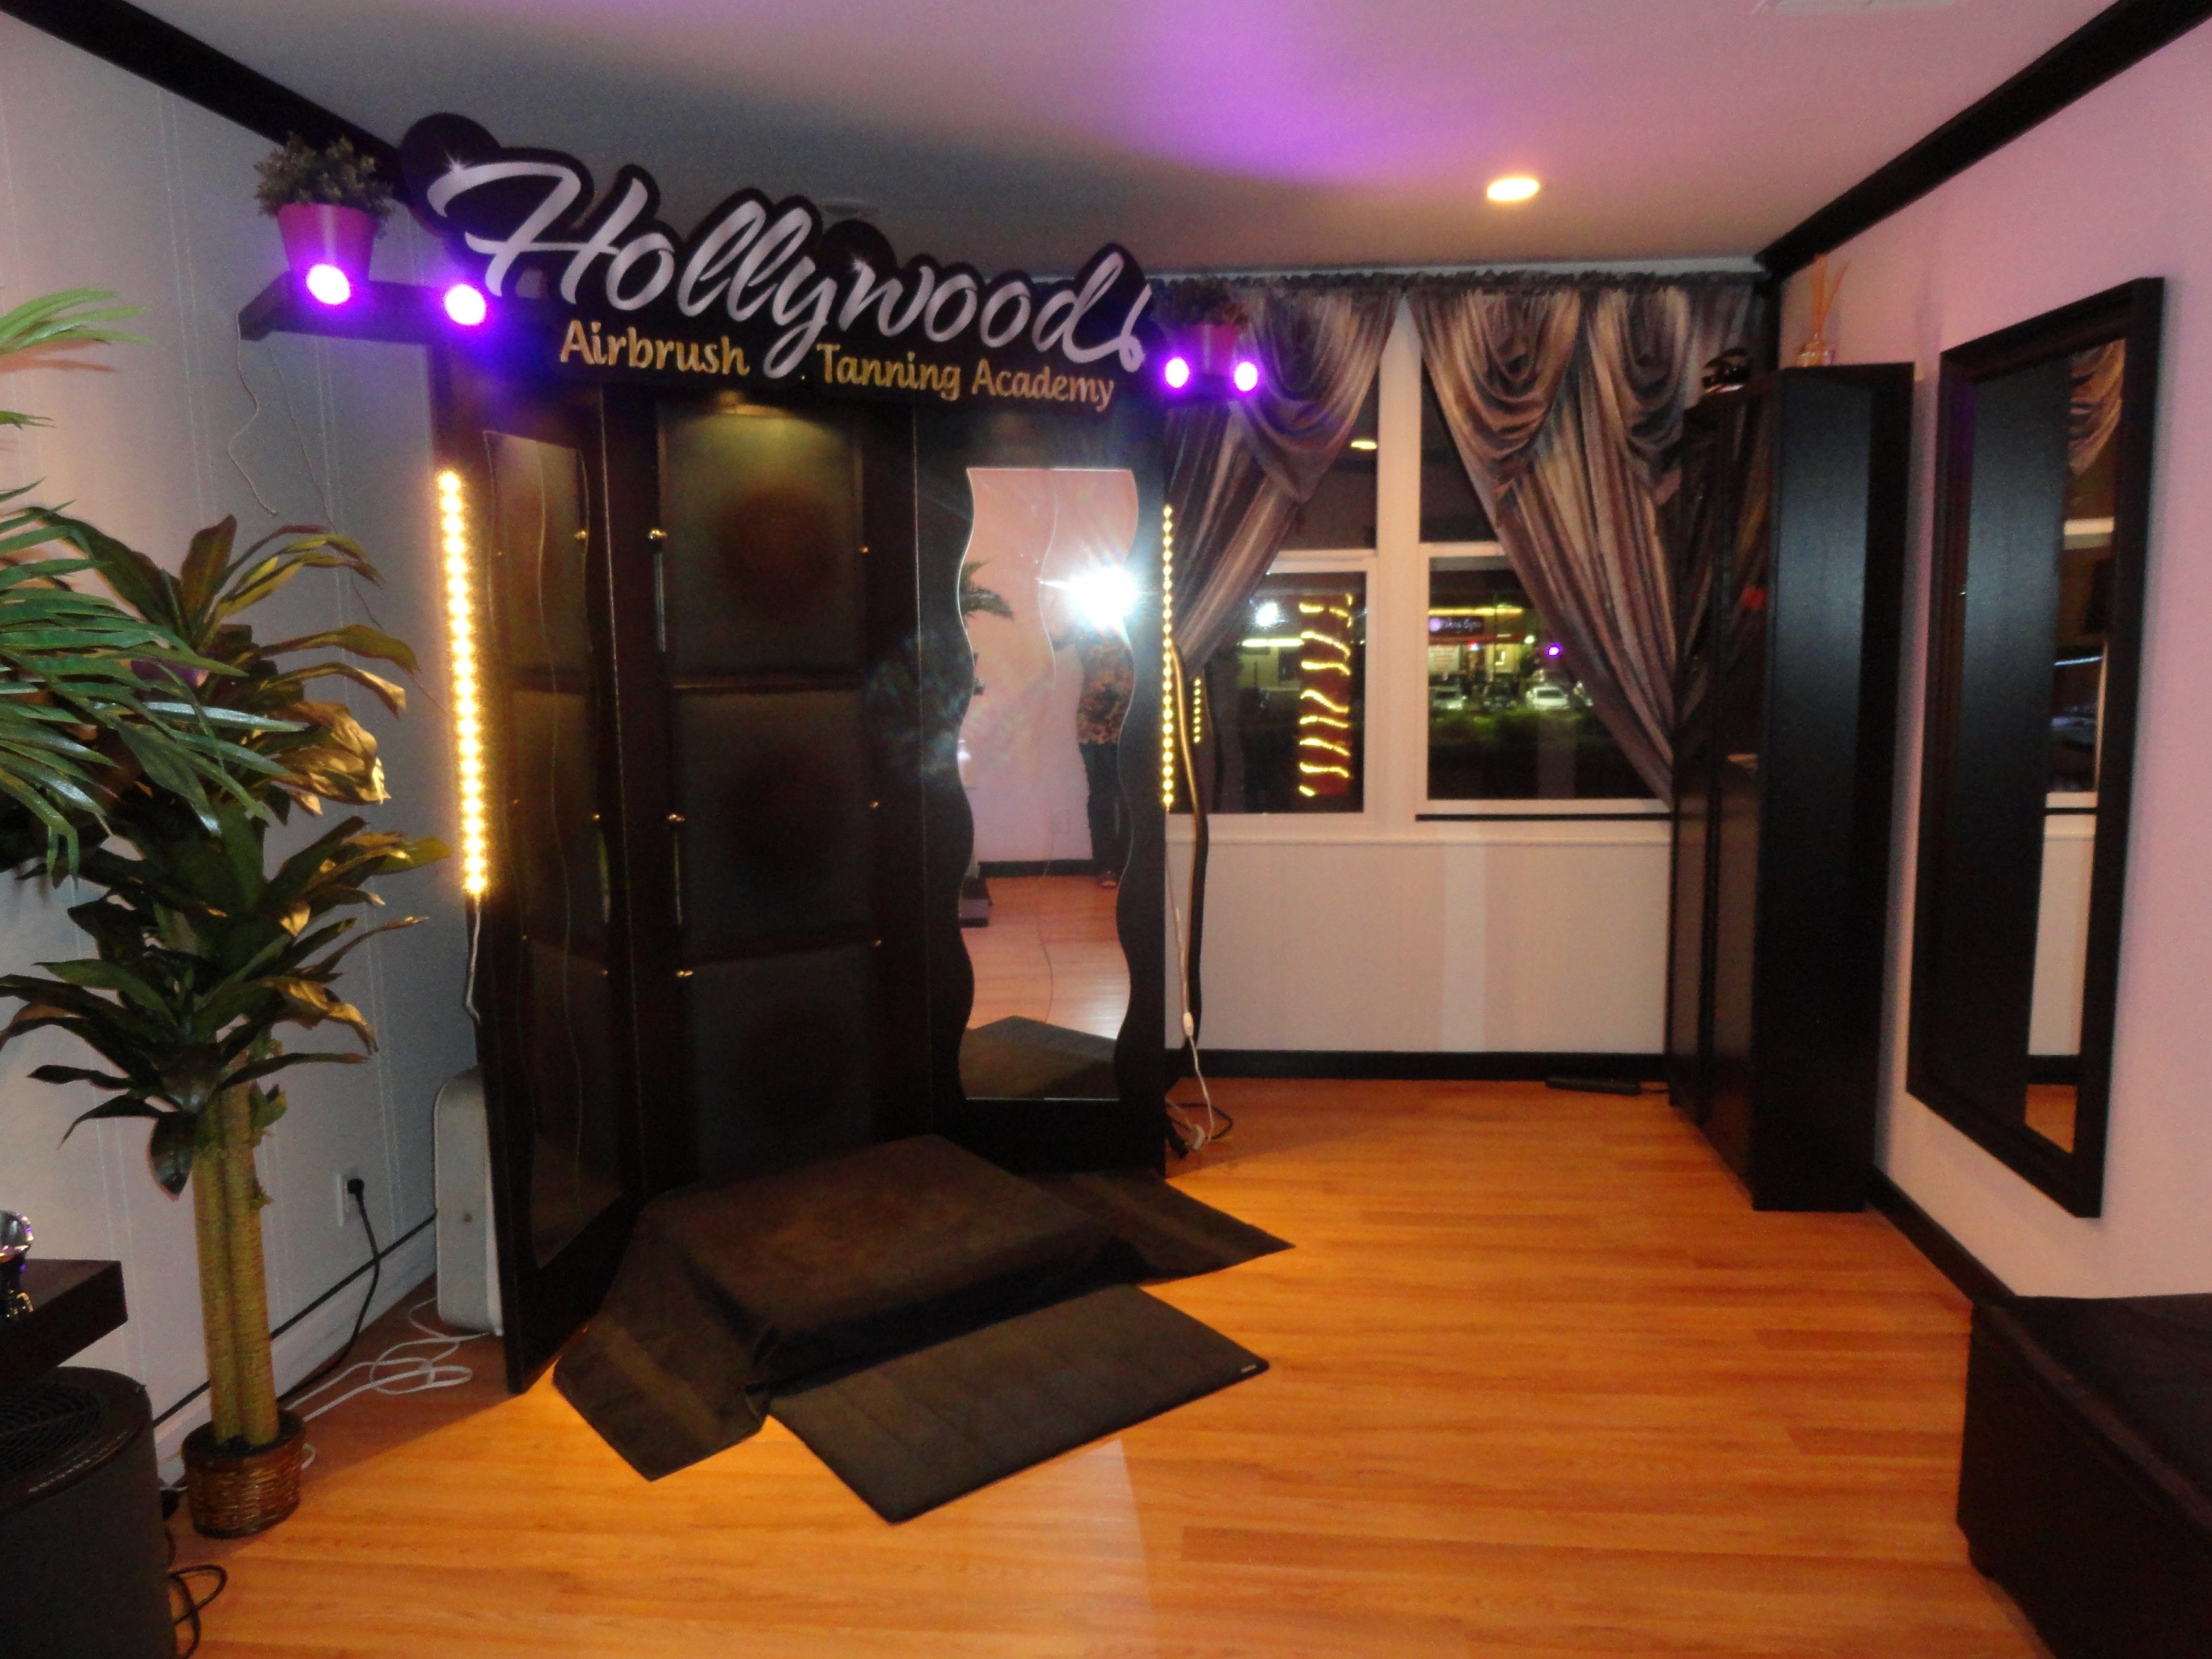 tanning salon owner from south korea completes her airbrush hollywood airbrush tanning academy spray tanning training studio